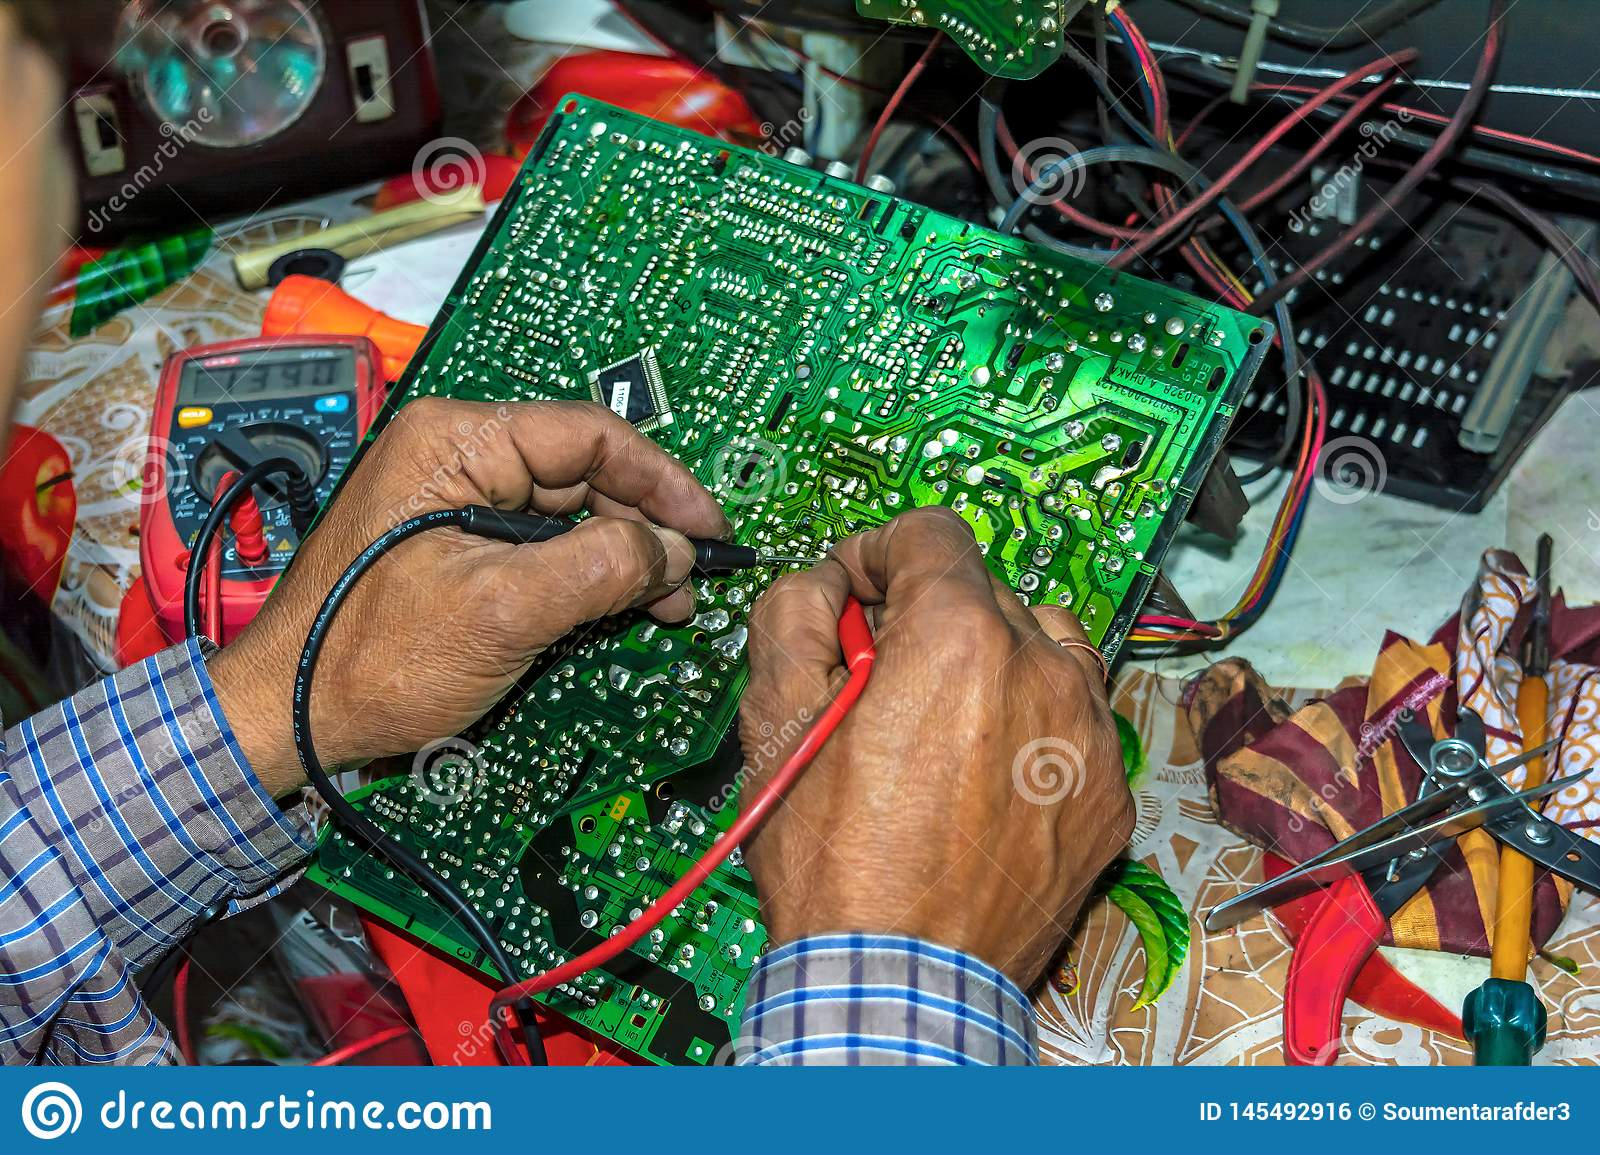 Repairing and checking of old TV motherboard with multimeter at home on the table